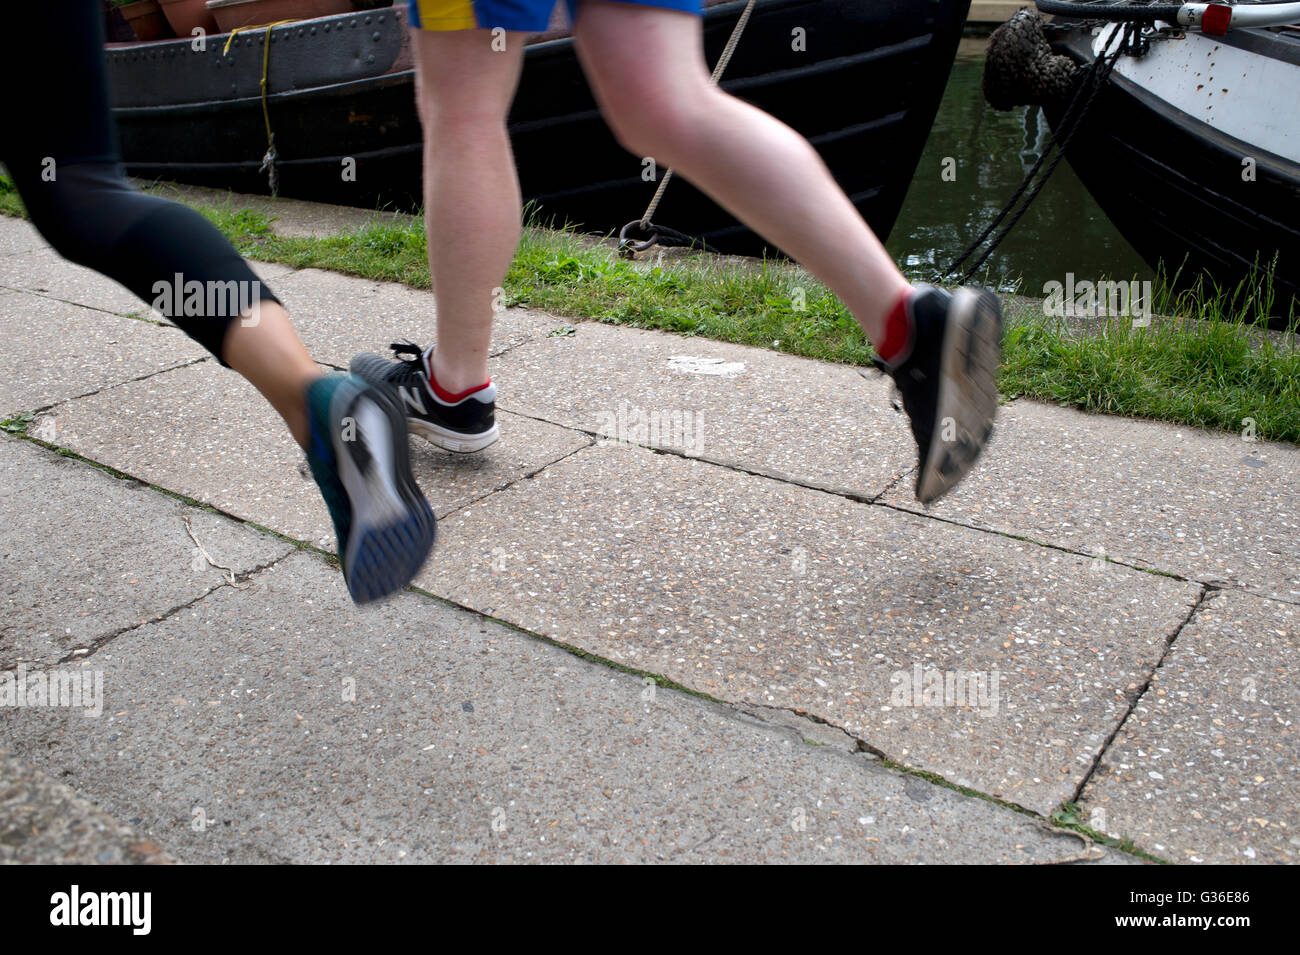 Hackney. Regents Canal. Runners on the towpath. - Stock Image